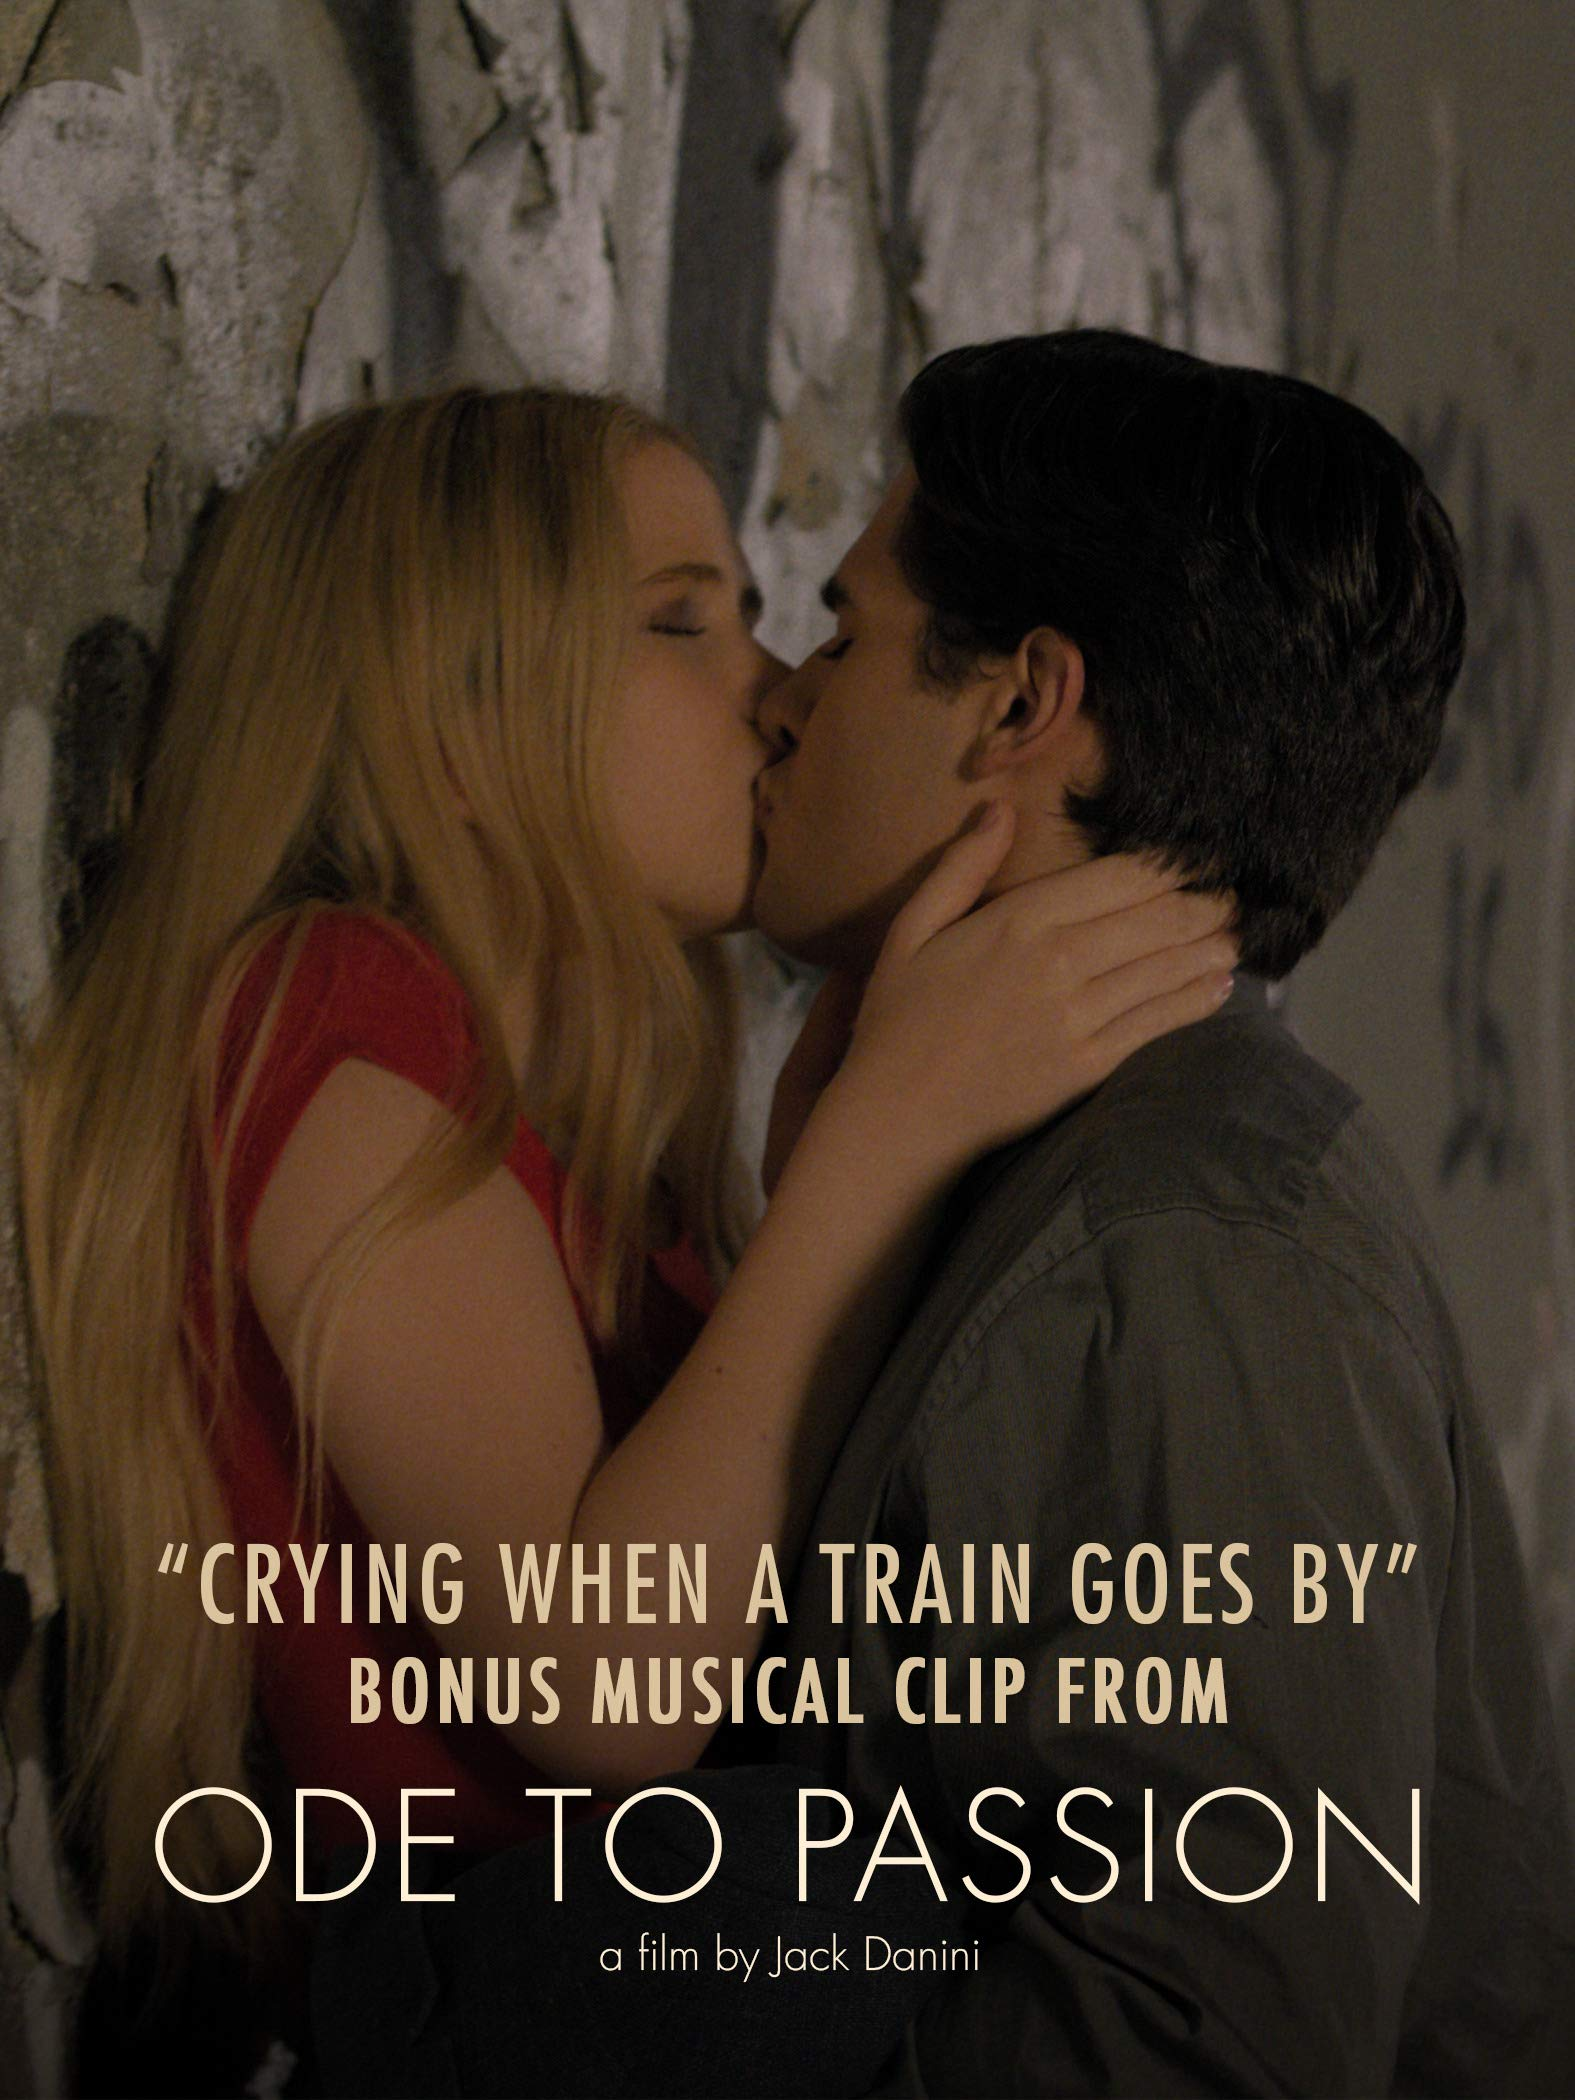 """""""Crying When a Train Goes By"""" - Bonus Musical Clip from the film Ode to Passion"""